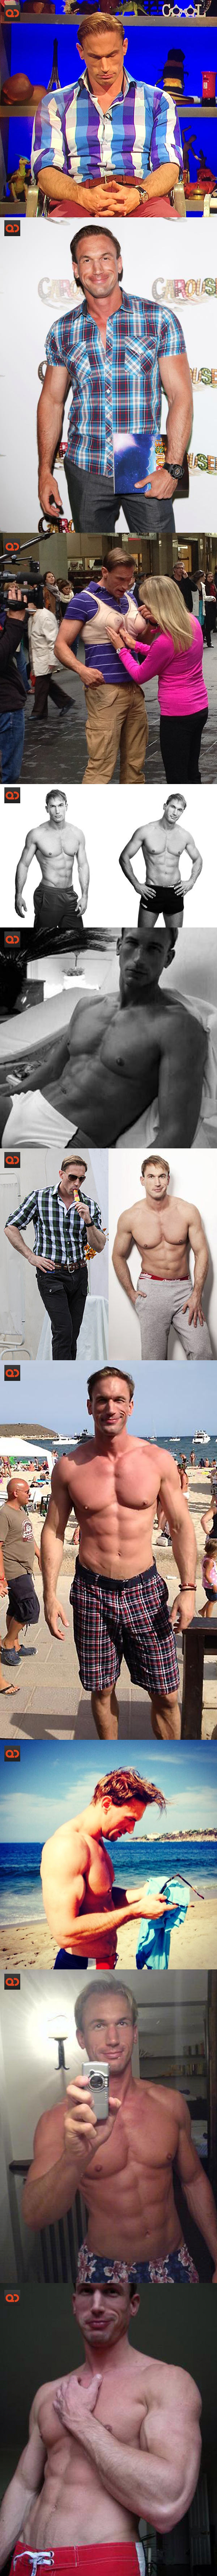 """Christian Jessen, Doctor And TV Presenter From British Show """"Supersize Vs Superskinny"""", Alleged Dick Pics Hit!"""